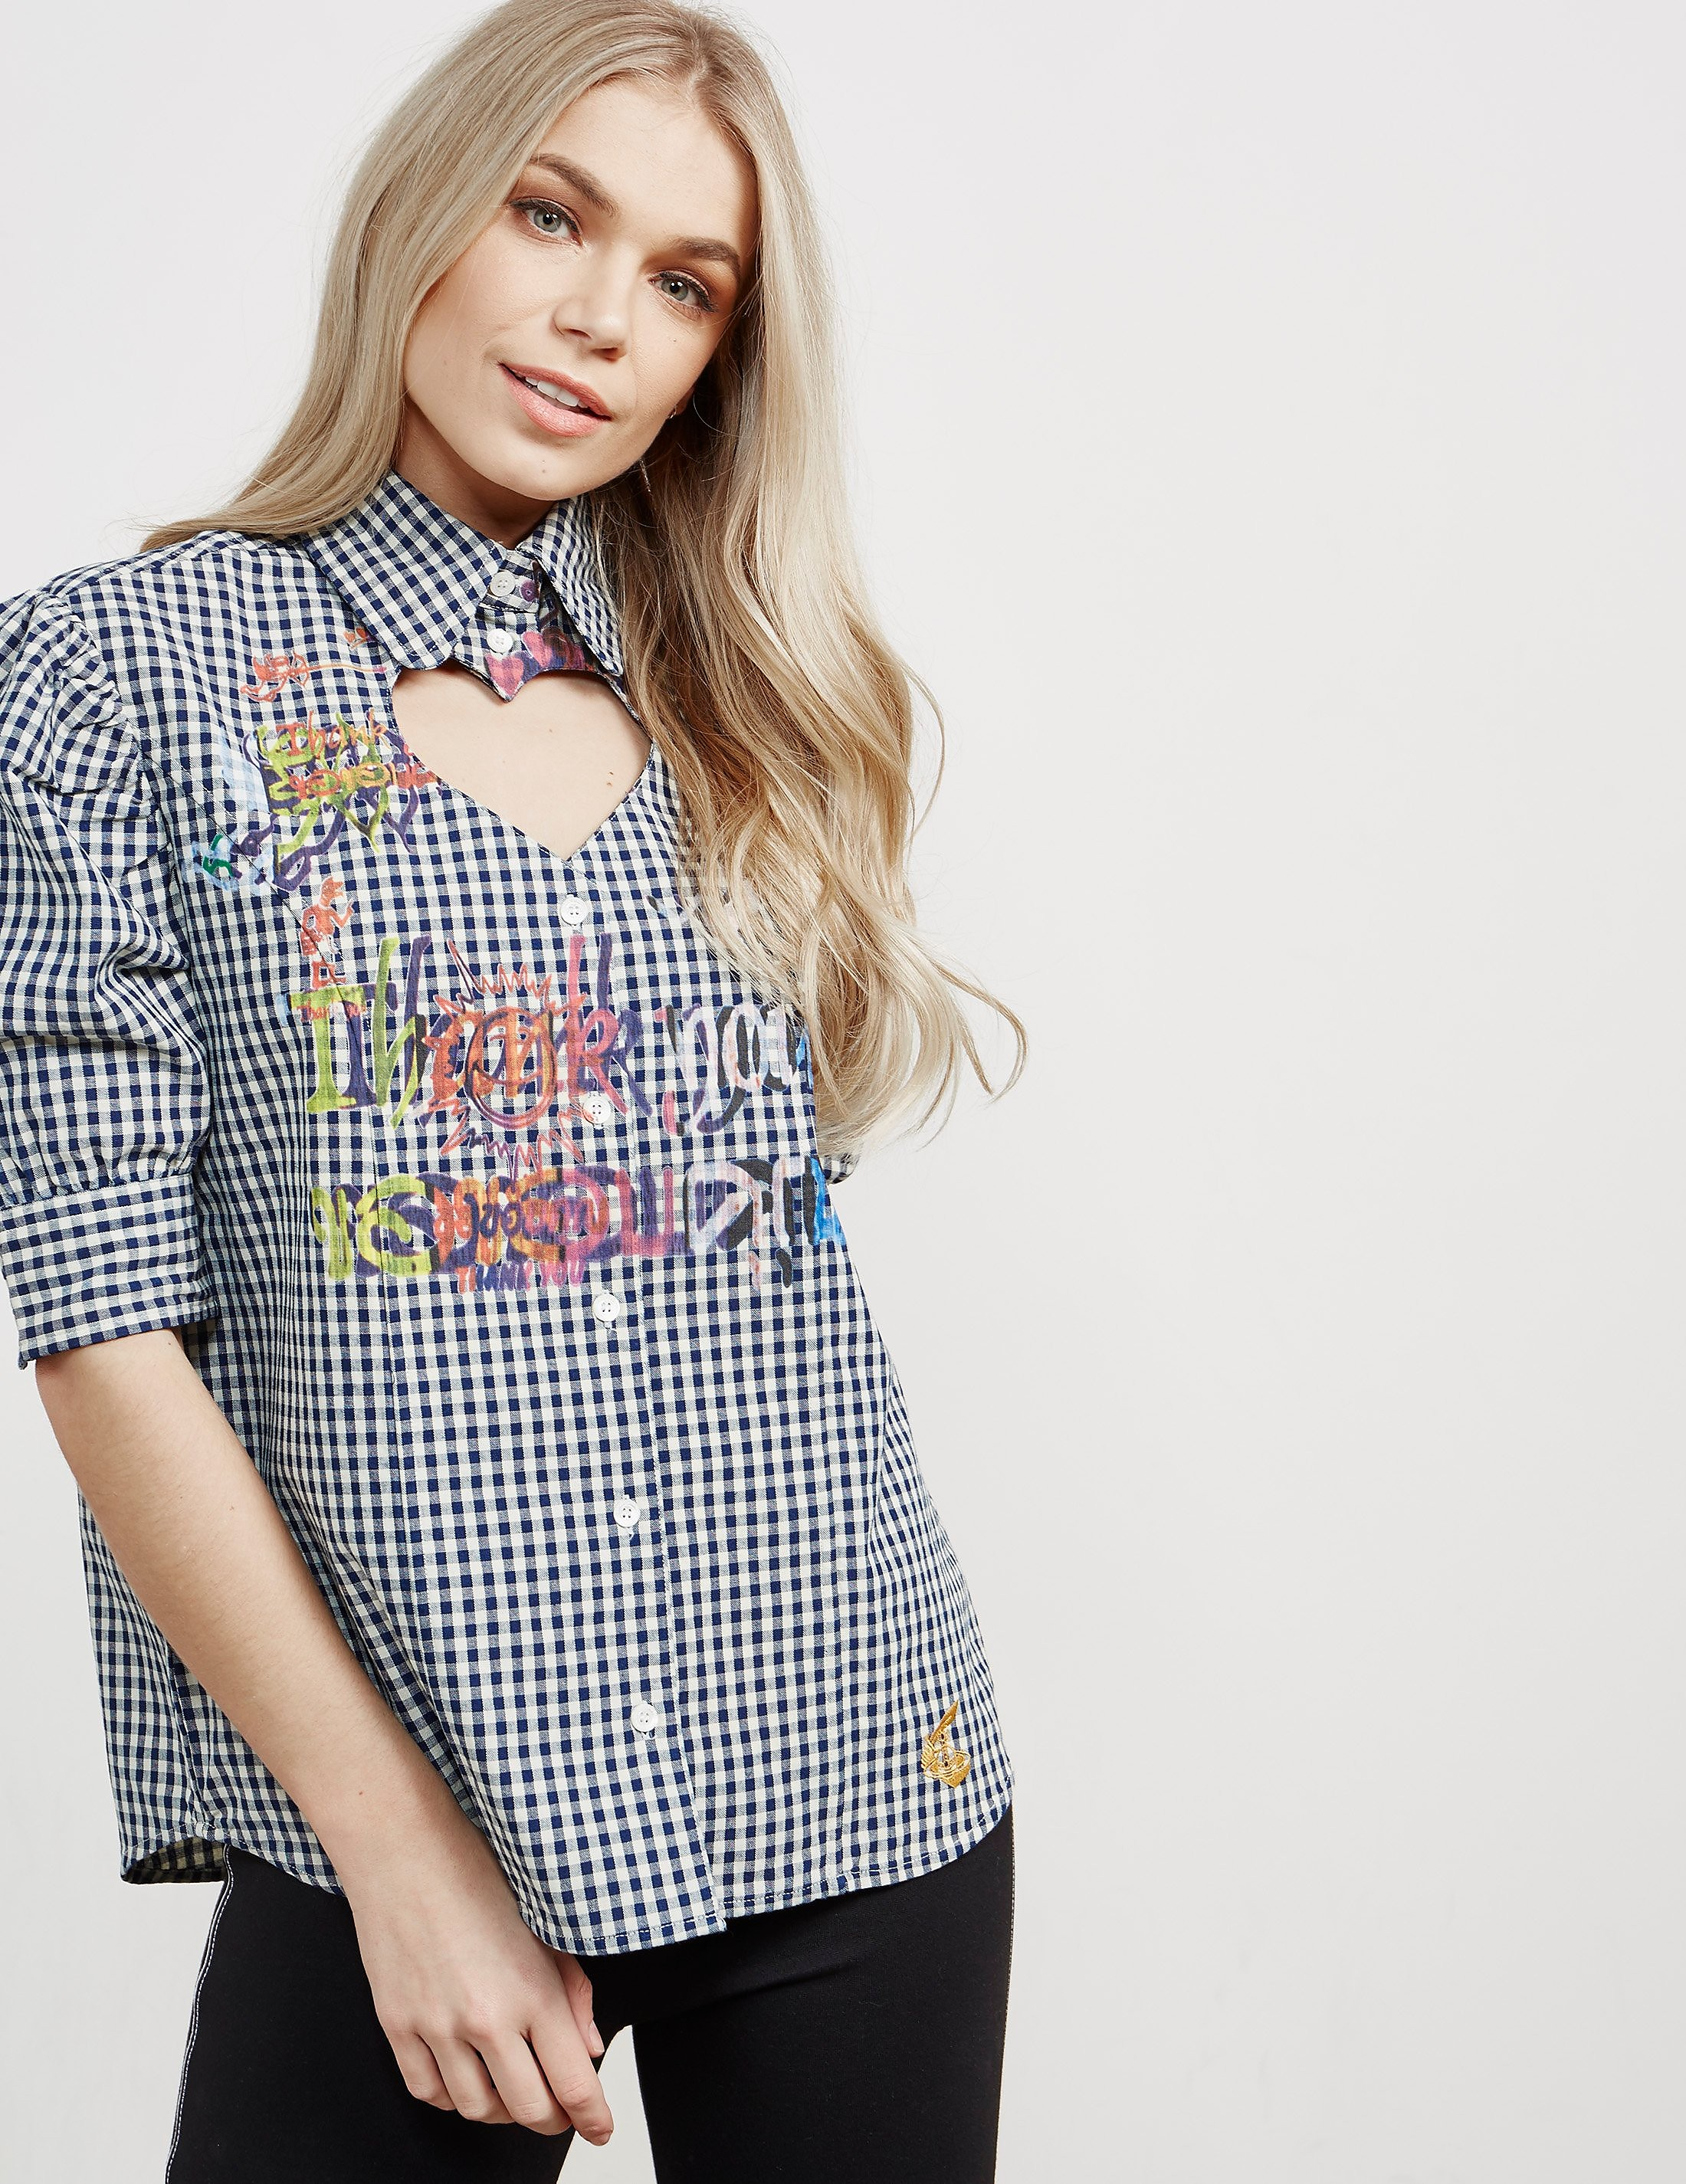 Vivienne Westwood Anglomania Cut Out Heart Short Sleeve Shirt